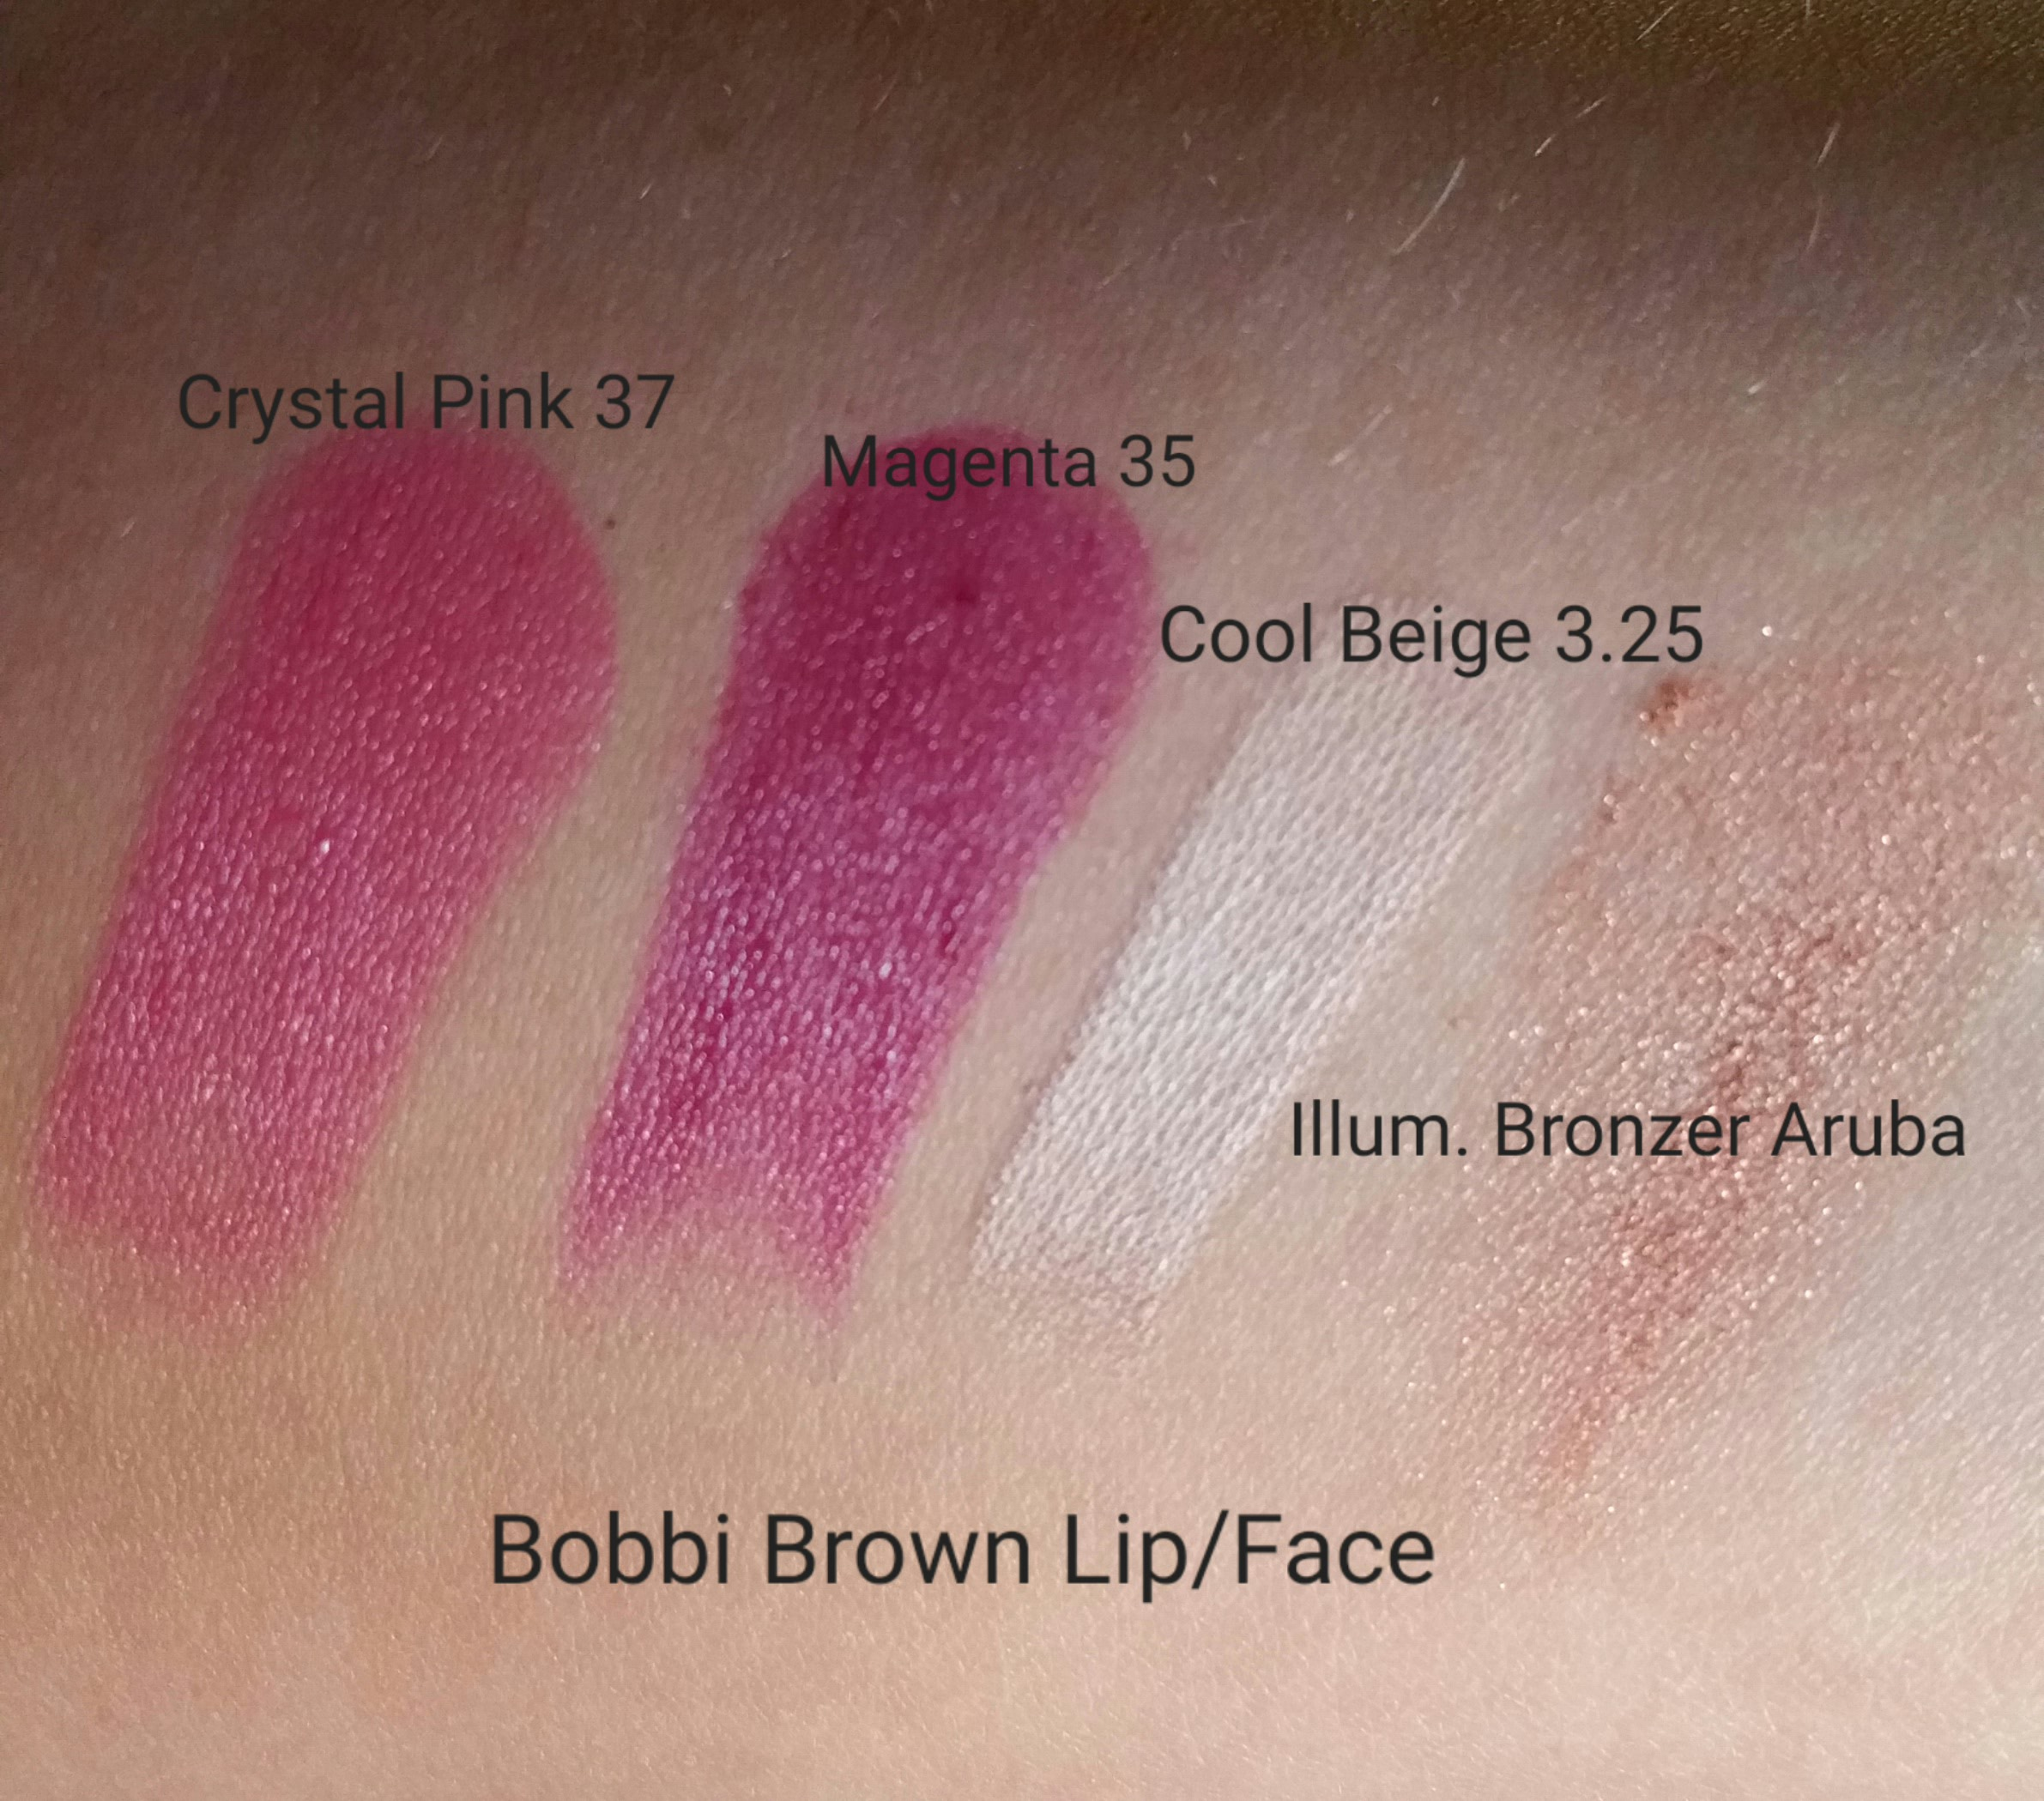 Face Touch Up by Bobbi Brown Cosmetics #8